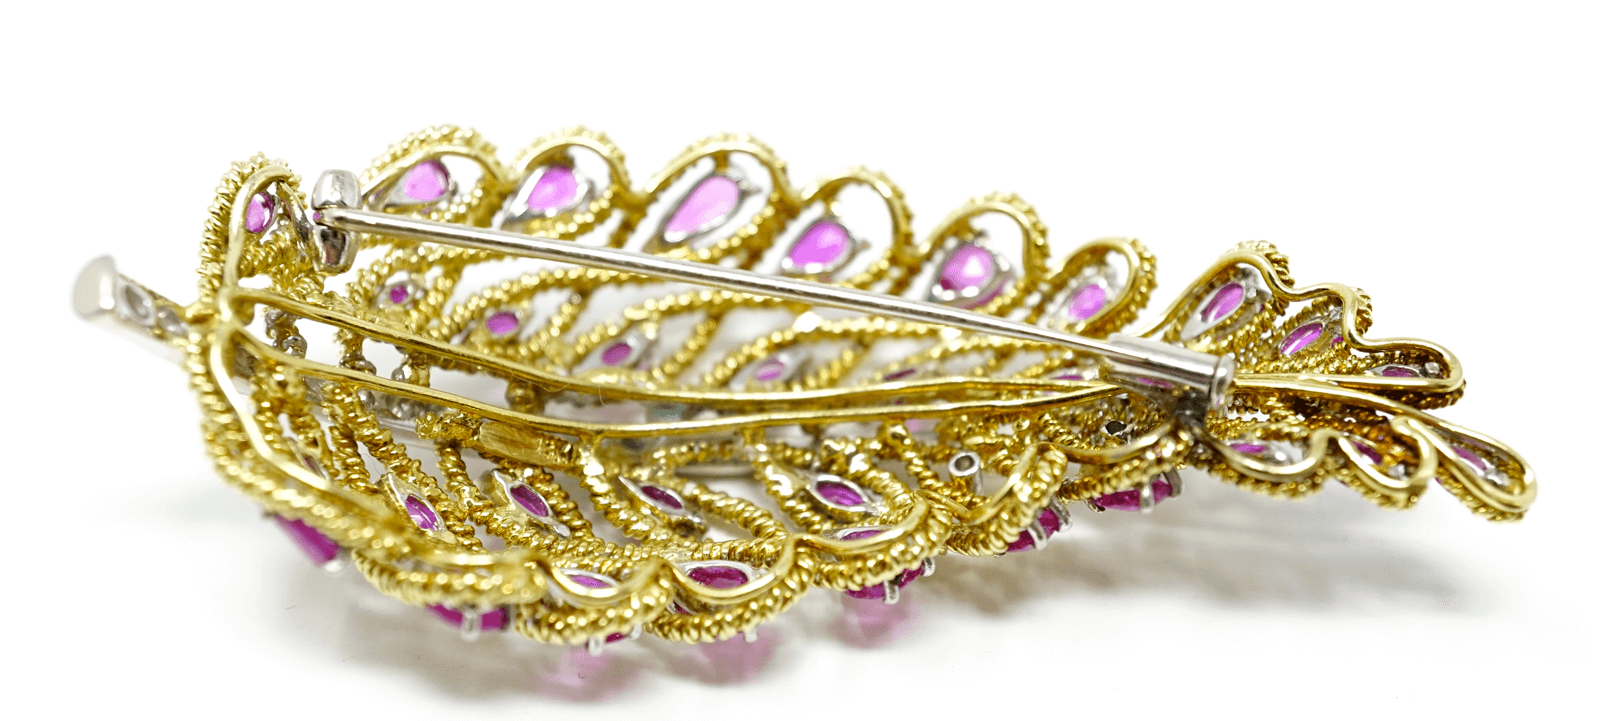 Solid 18k Yellow Diamonds & Ruby Brooch w/ Certificate